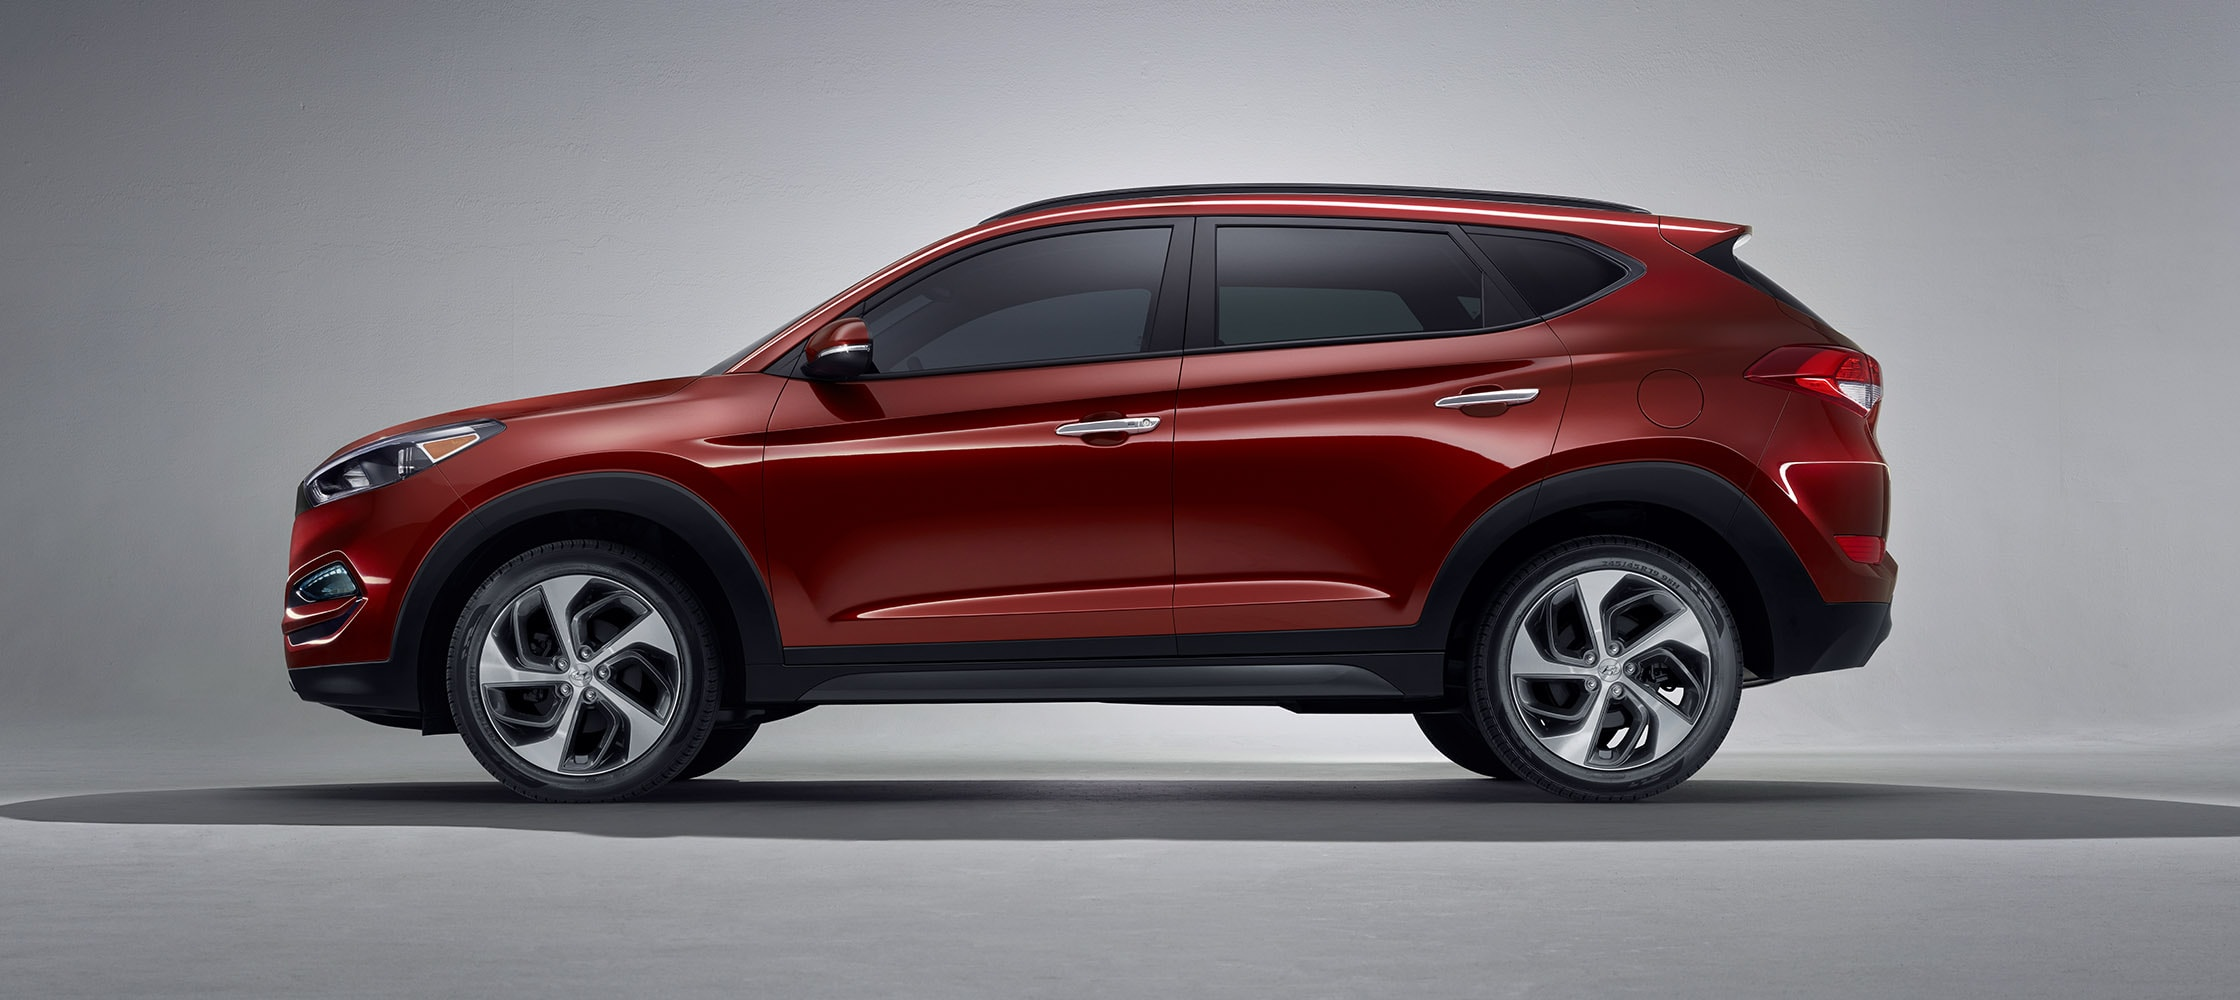 exterior image of red hyundai tucson 2017 cuv with silver. Black Bedroom Furniture Sets. Home Design Ideas